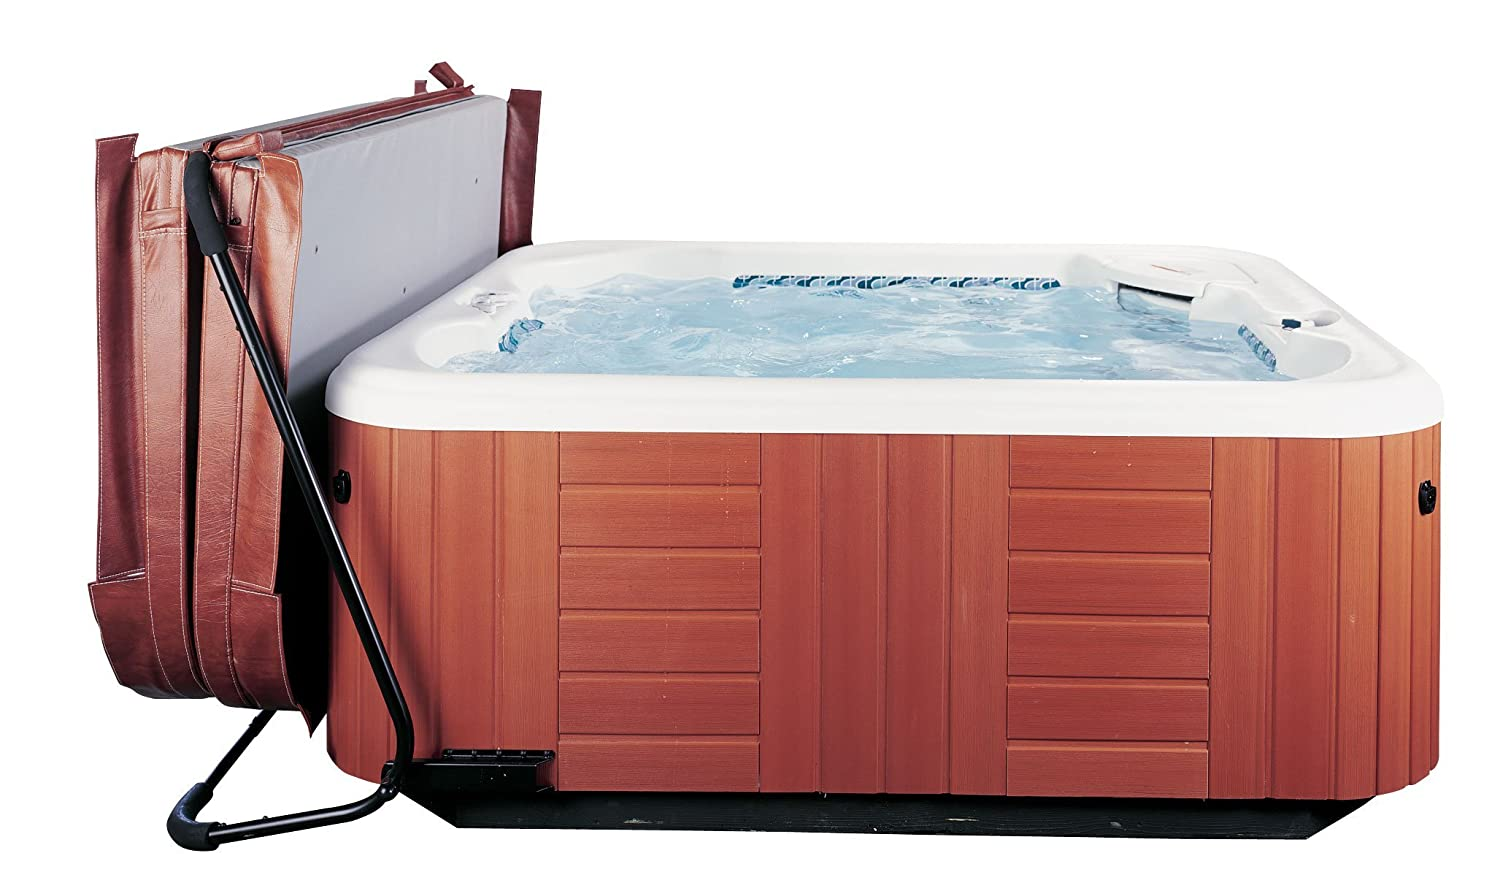 Amazon.com: CoverMate II Spa and Hot Tub Cover Lift - Under Style ...